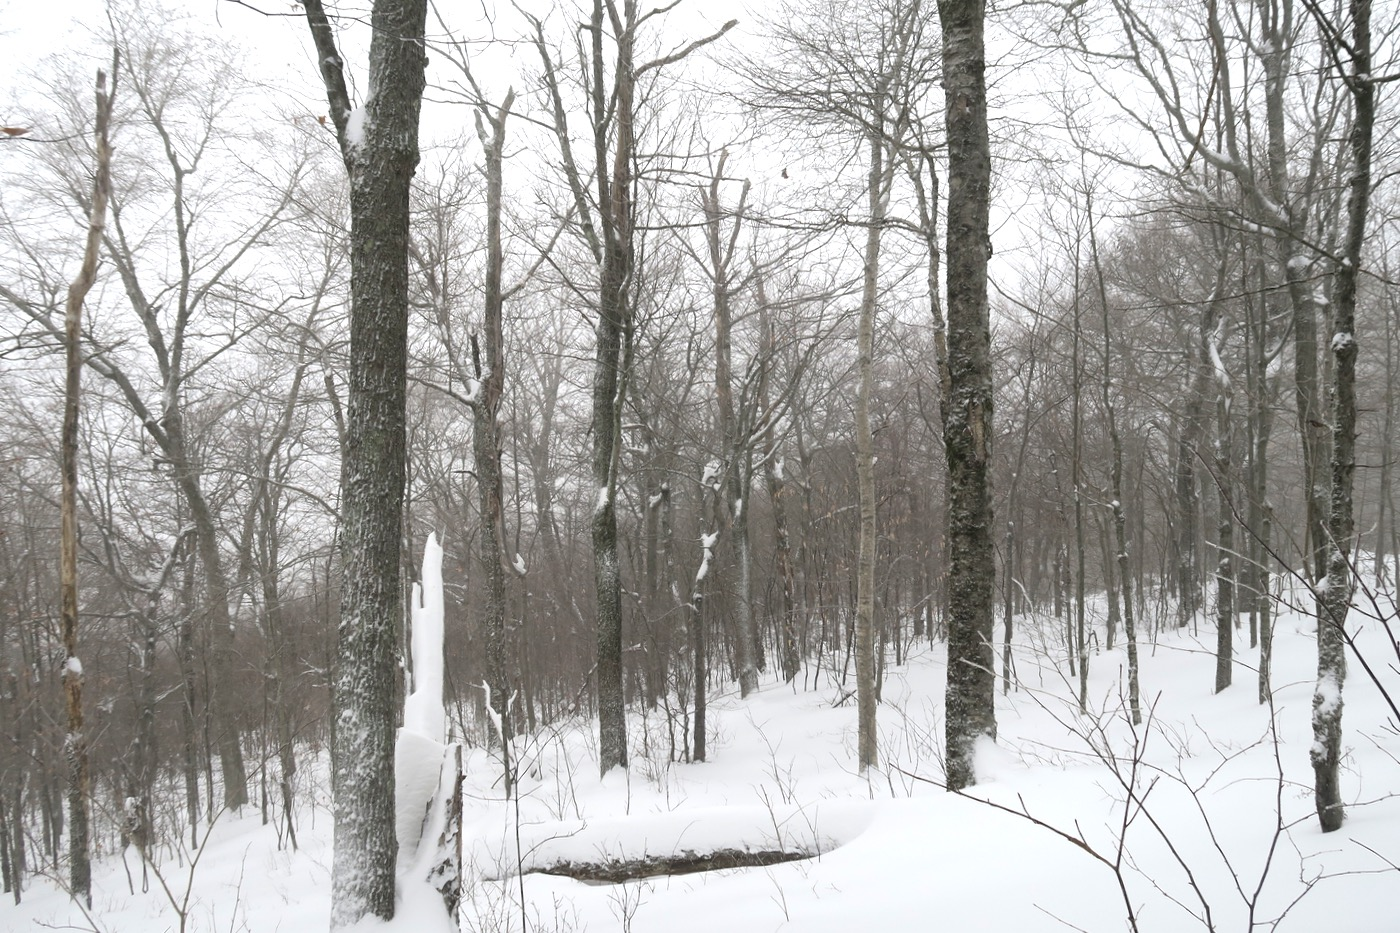 trees in play on opening day